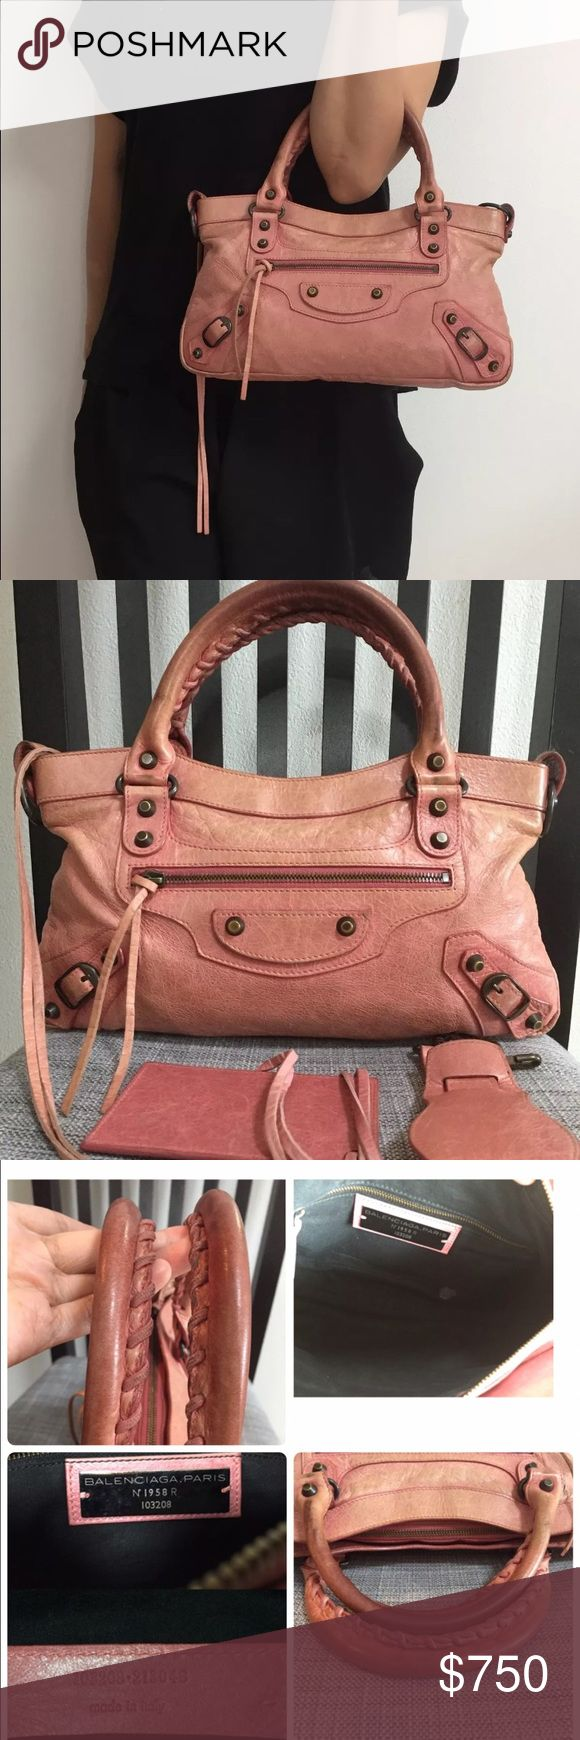 Balenciaga The First handbag Authentic 09 Pink Balenciaga The first Handbag. This item has been preloved please check the photos before submitting an offer or purchasing. There is normal wear on the bag from normal use. It comes with mirror and removable strap. No dust bag is included. Balenciaga Bags